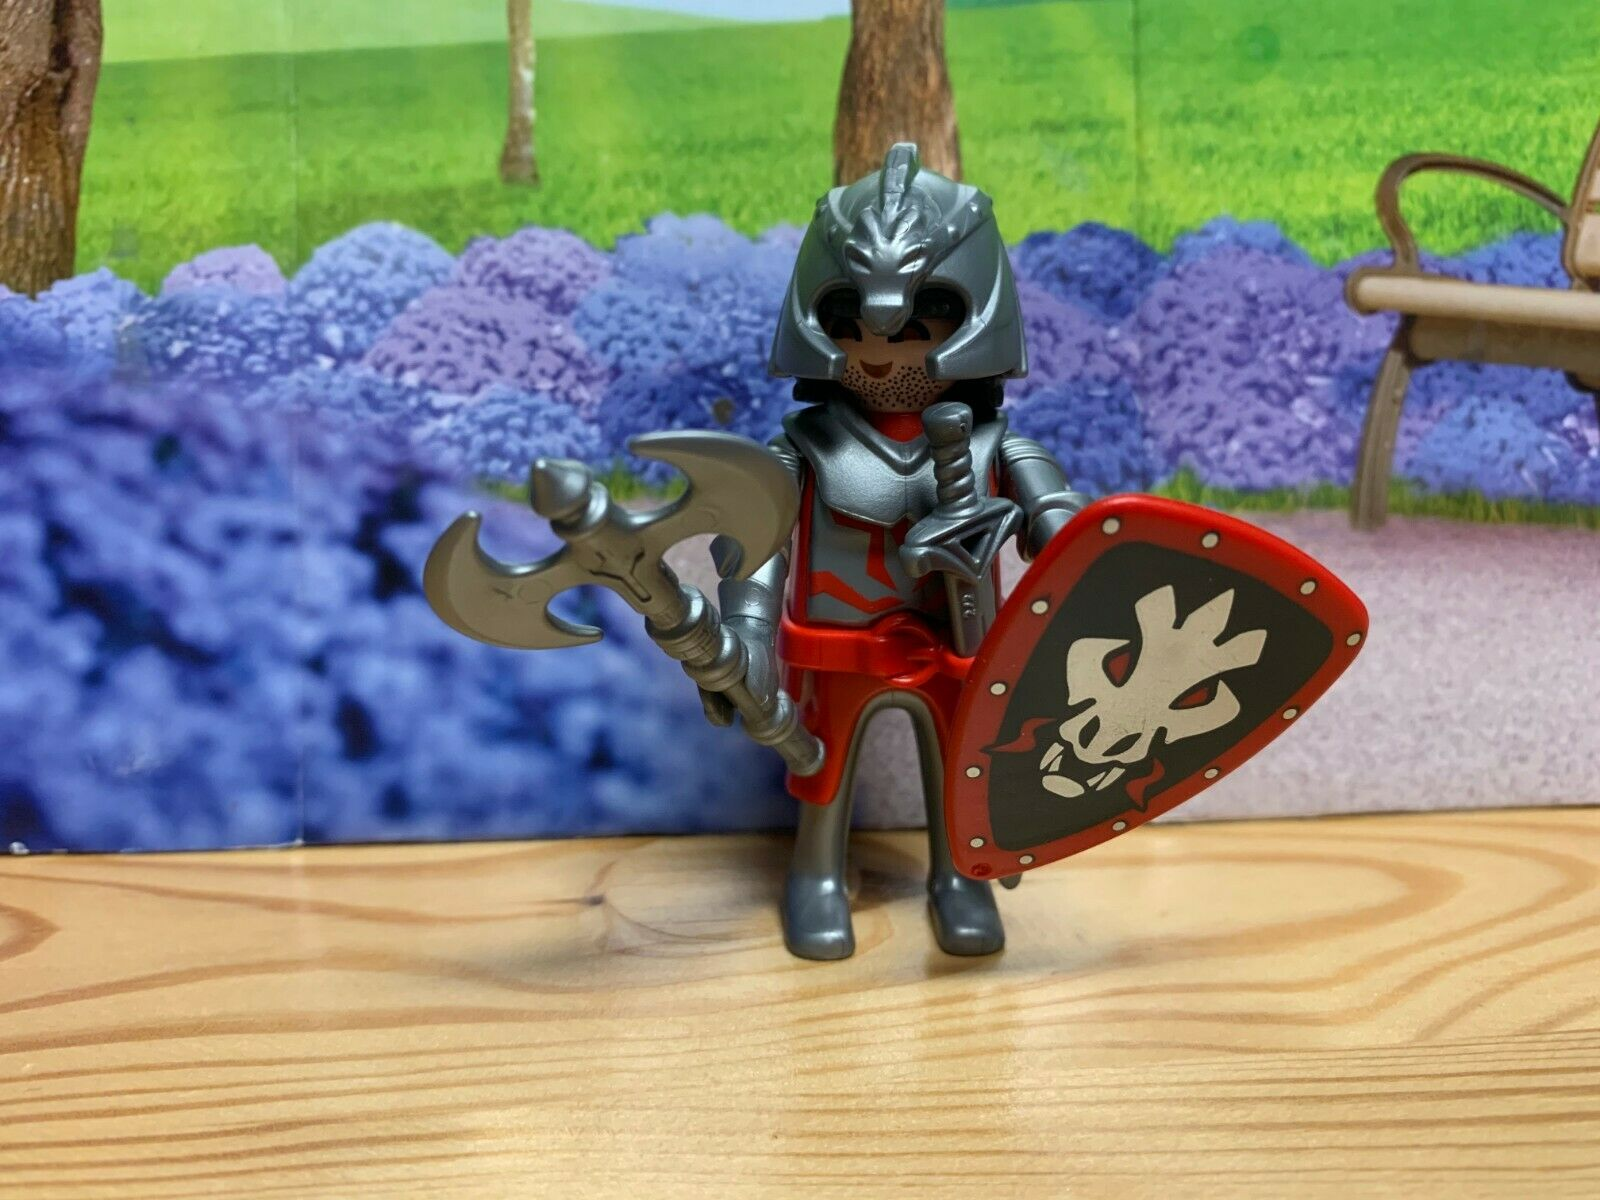 3x Playmobil Knights Swords Anthracite Unusual Variant